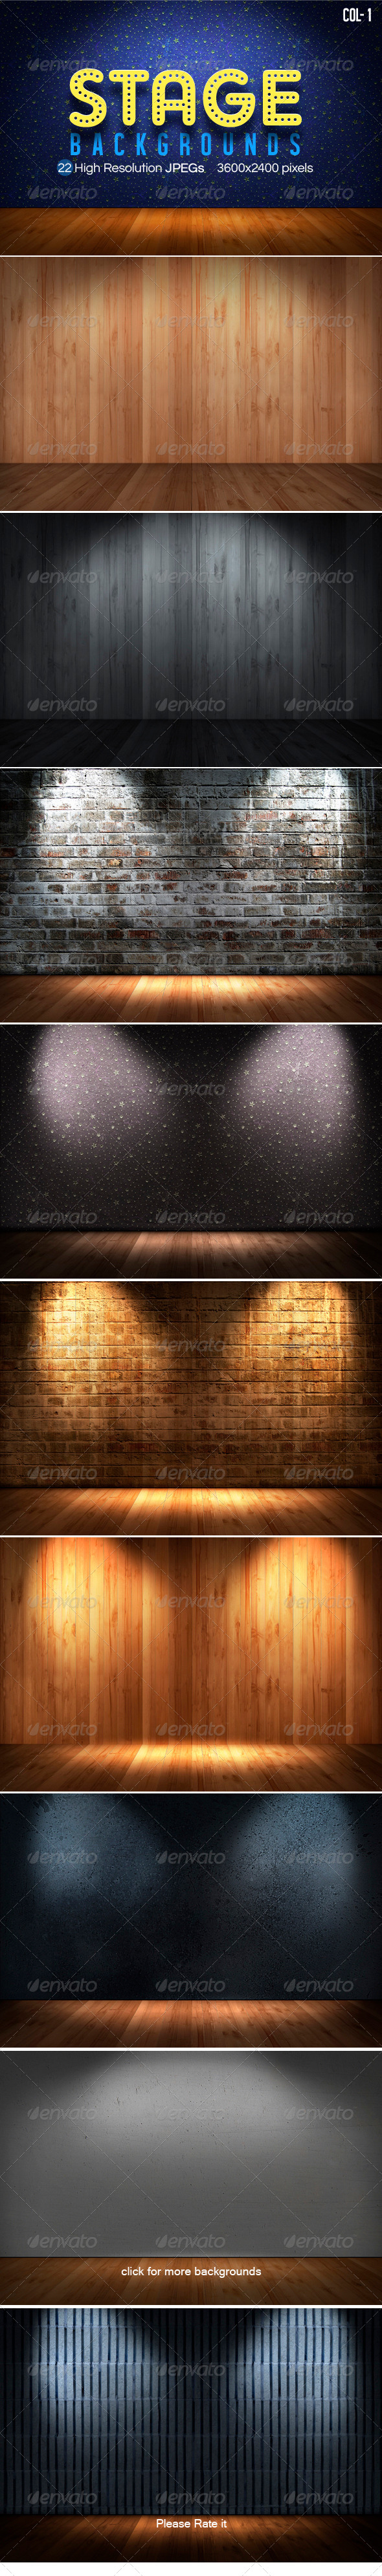 GraphicRiver Stage Backgrounds Col1 4112741